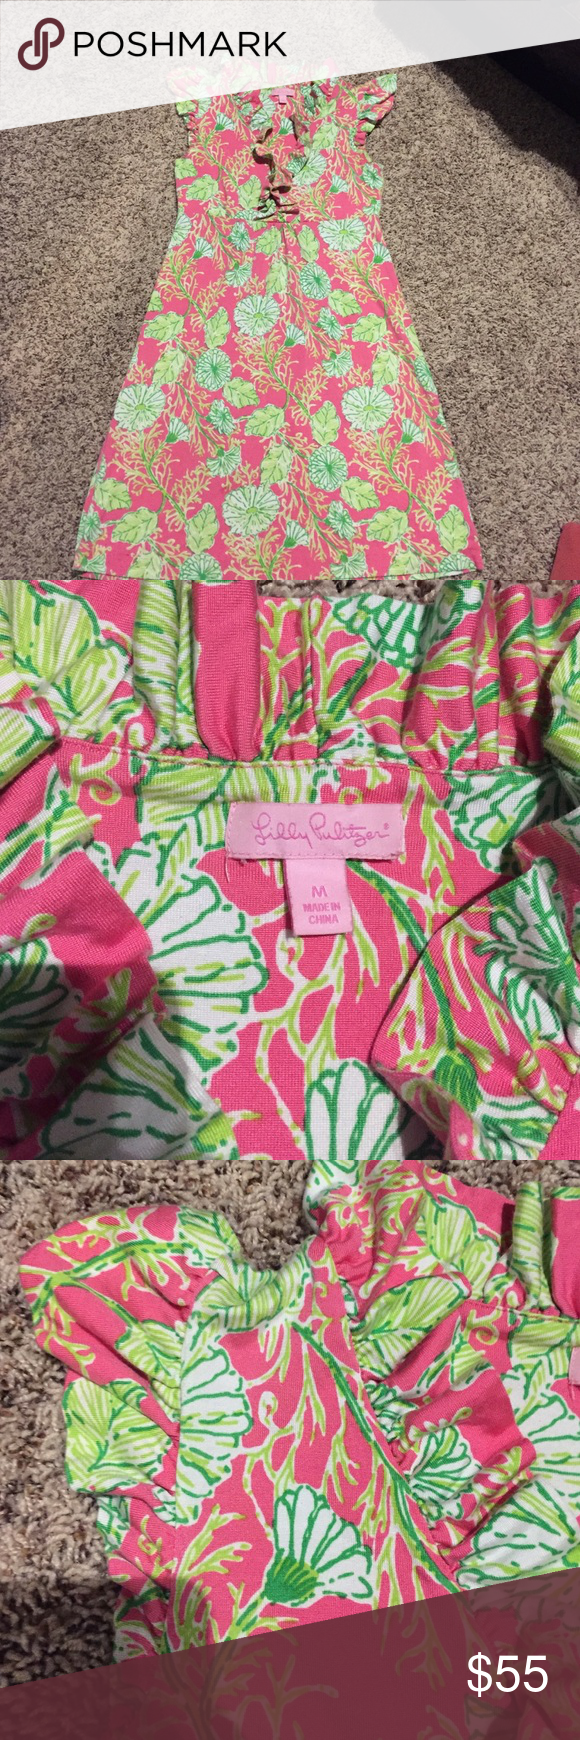 Lilly Pulitzer dress Perfect condition size m Lilly Pulitzer Dresses